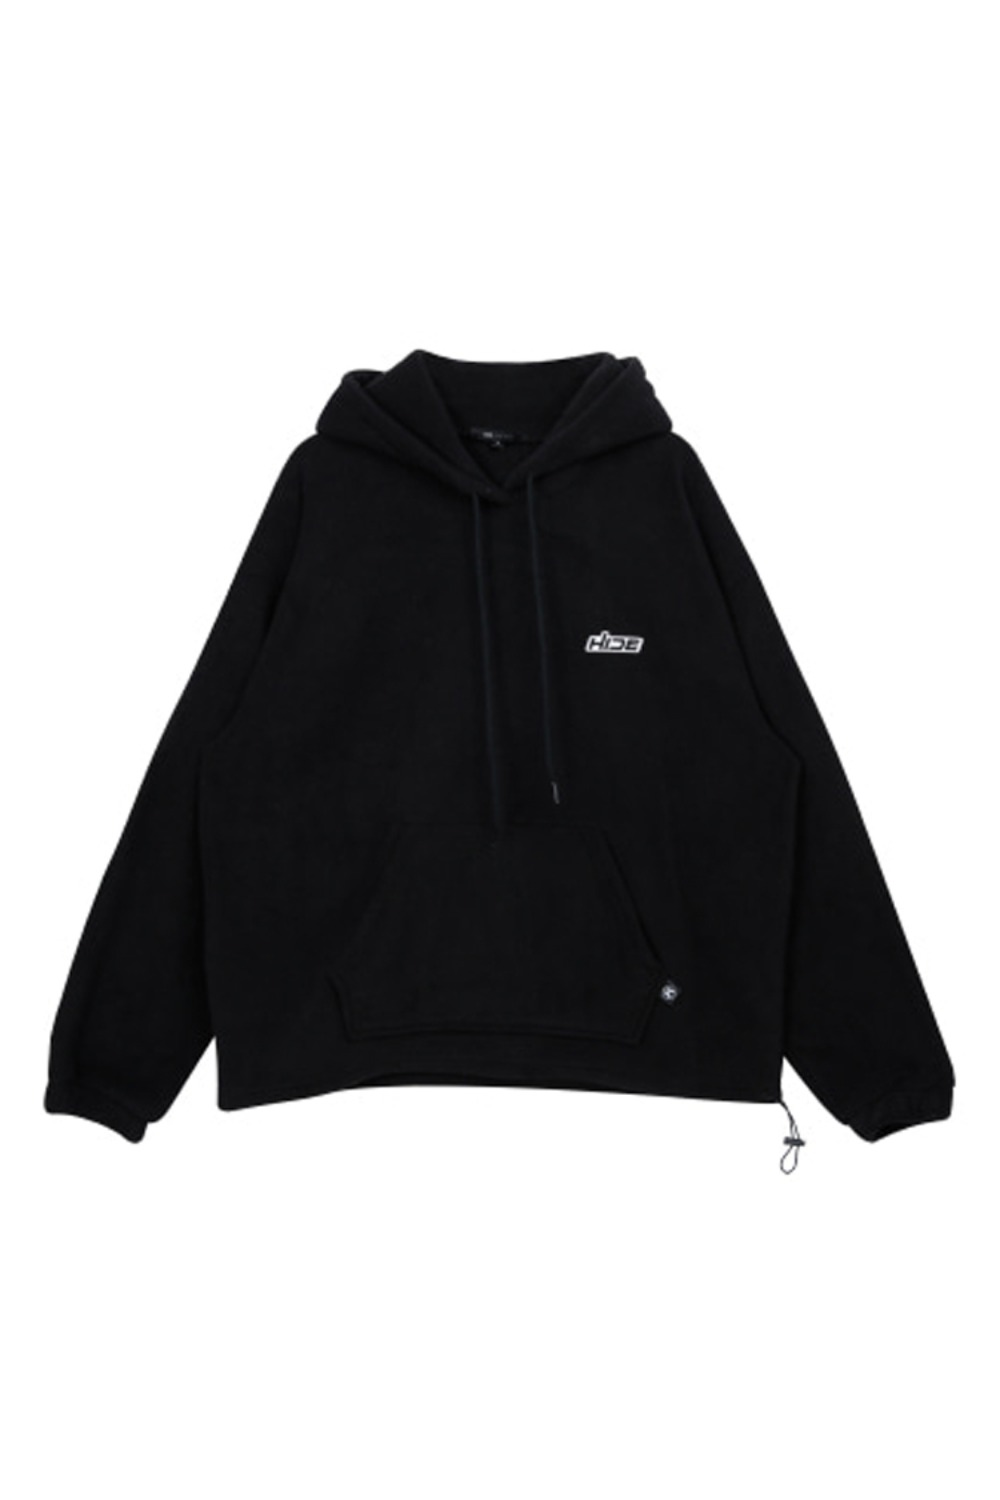 HIDE Future Fleece Hoodie & Pants BLACK